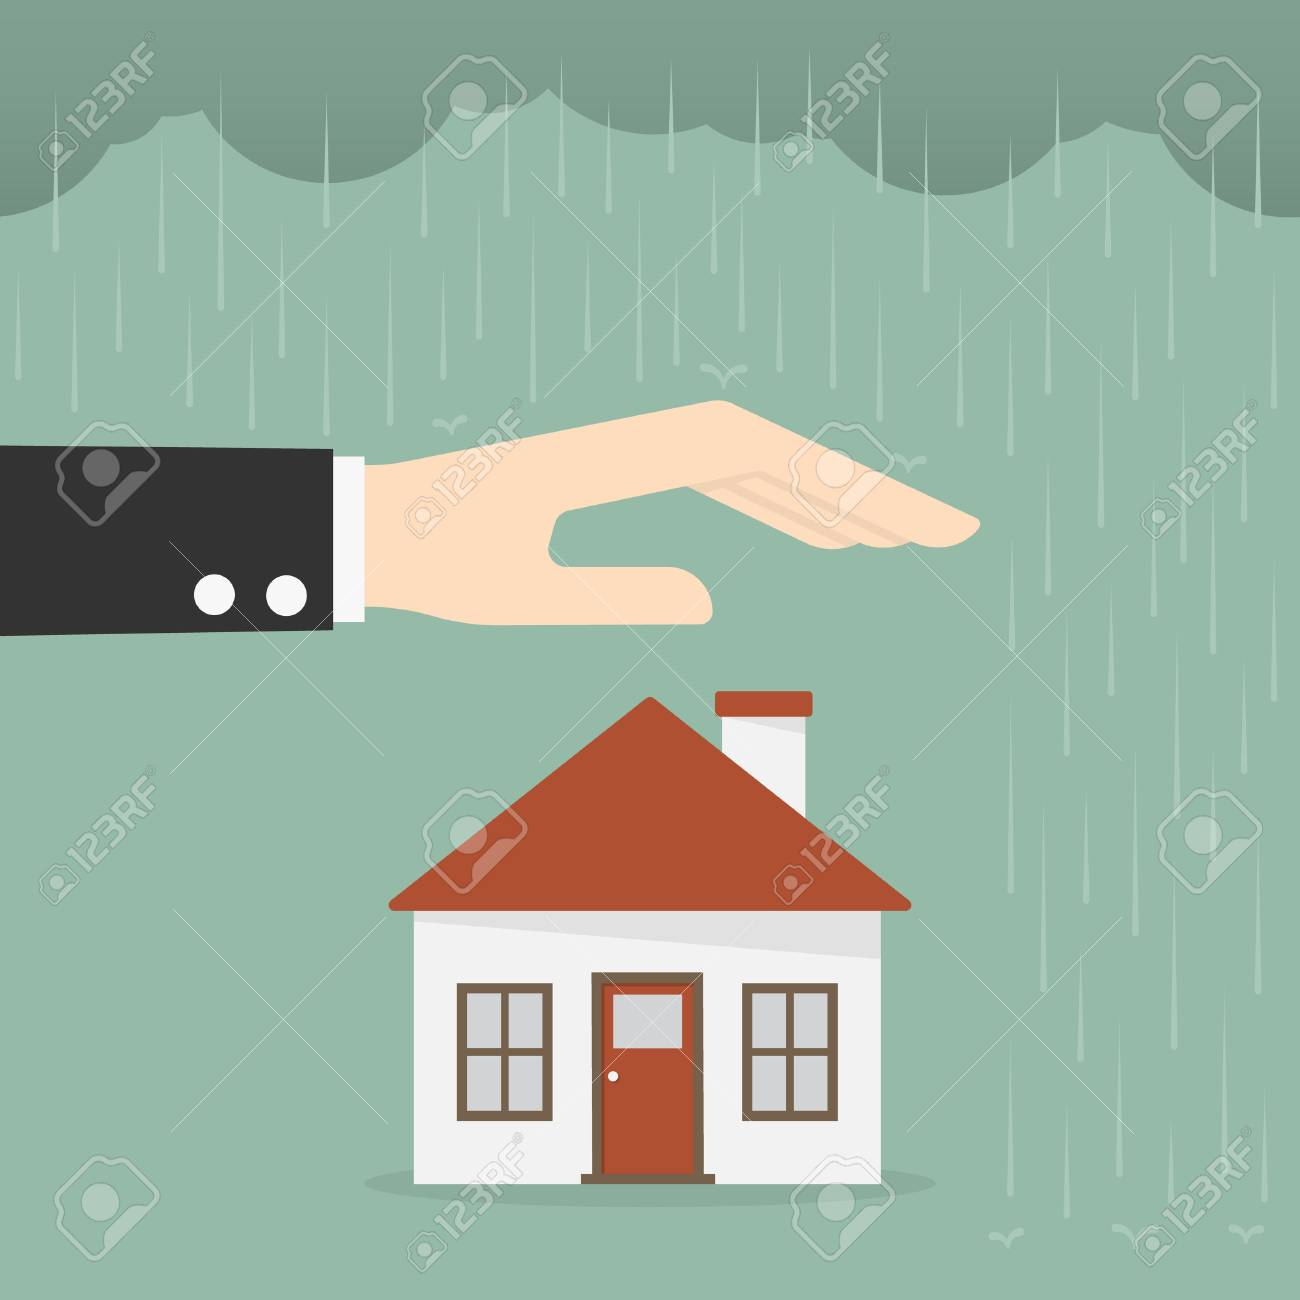 Property Insurance And Security Concept. Business Concept Illustration. - 83432861